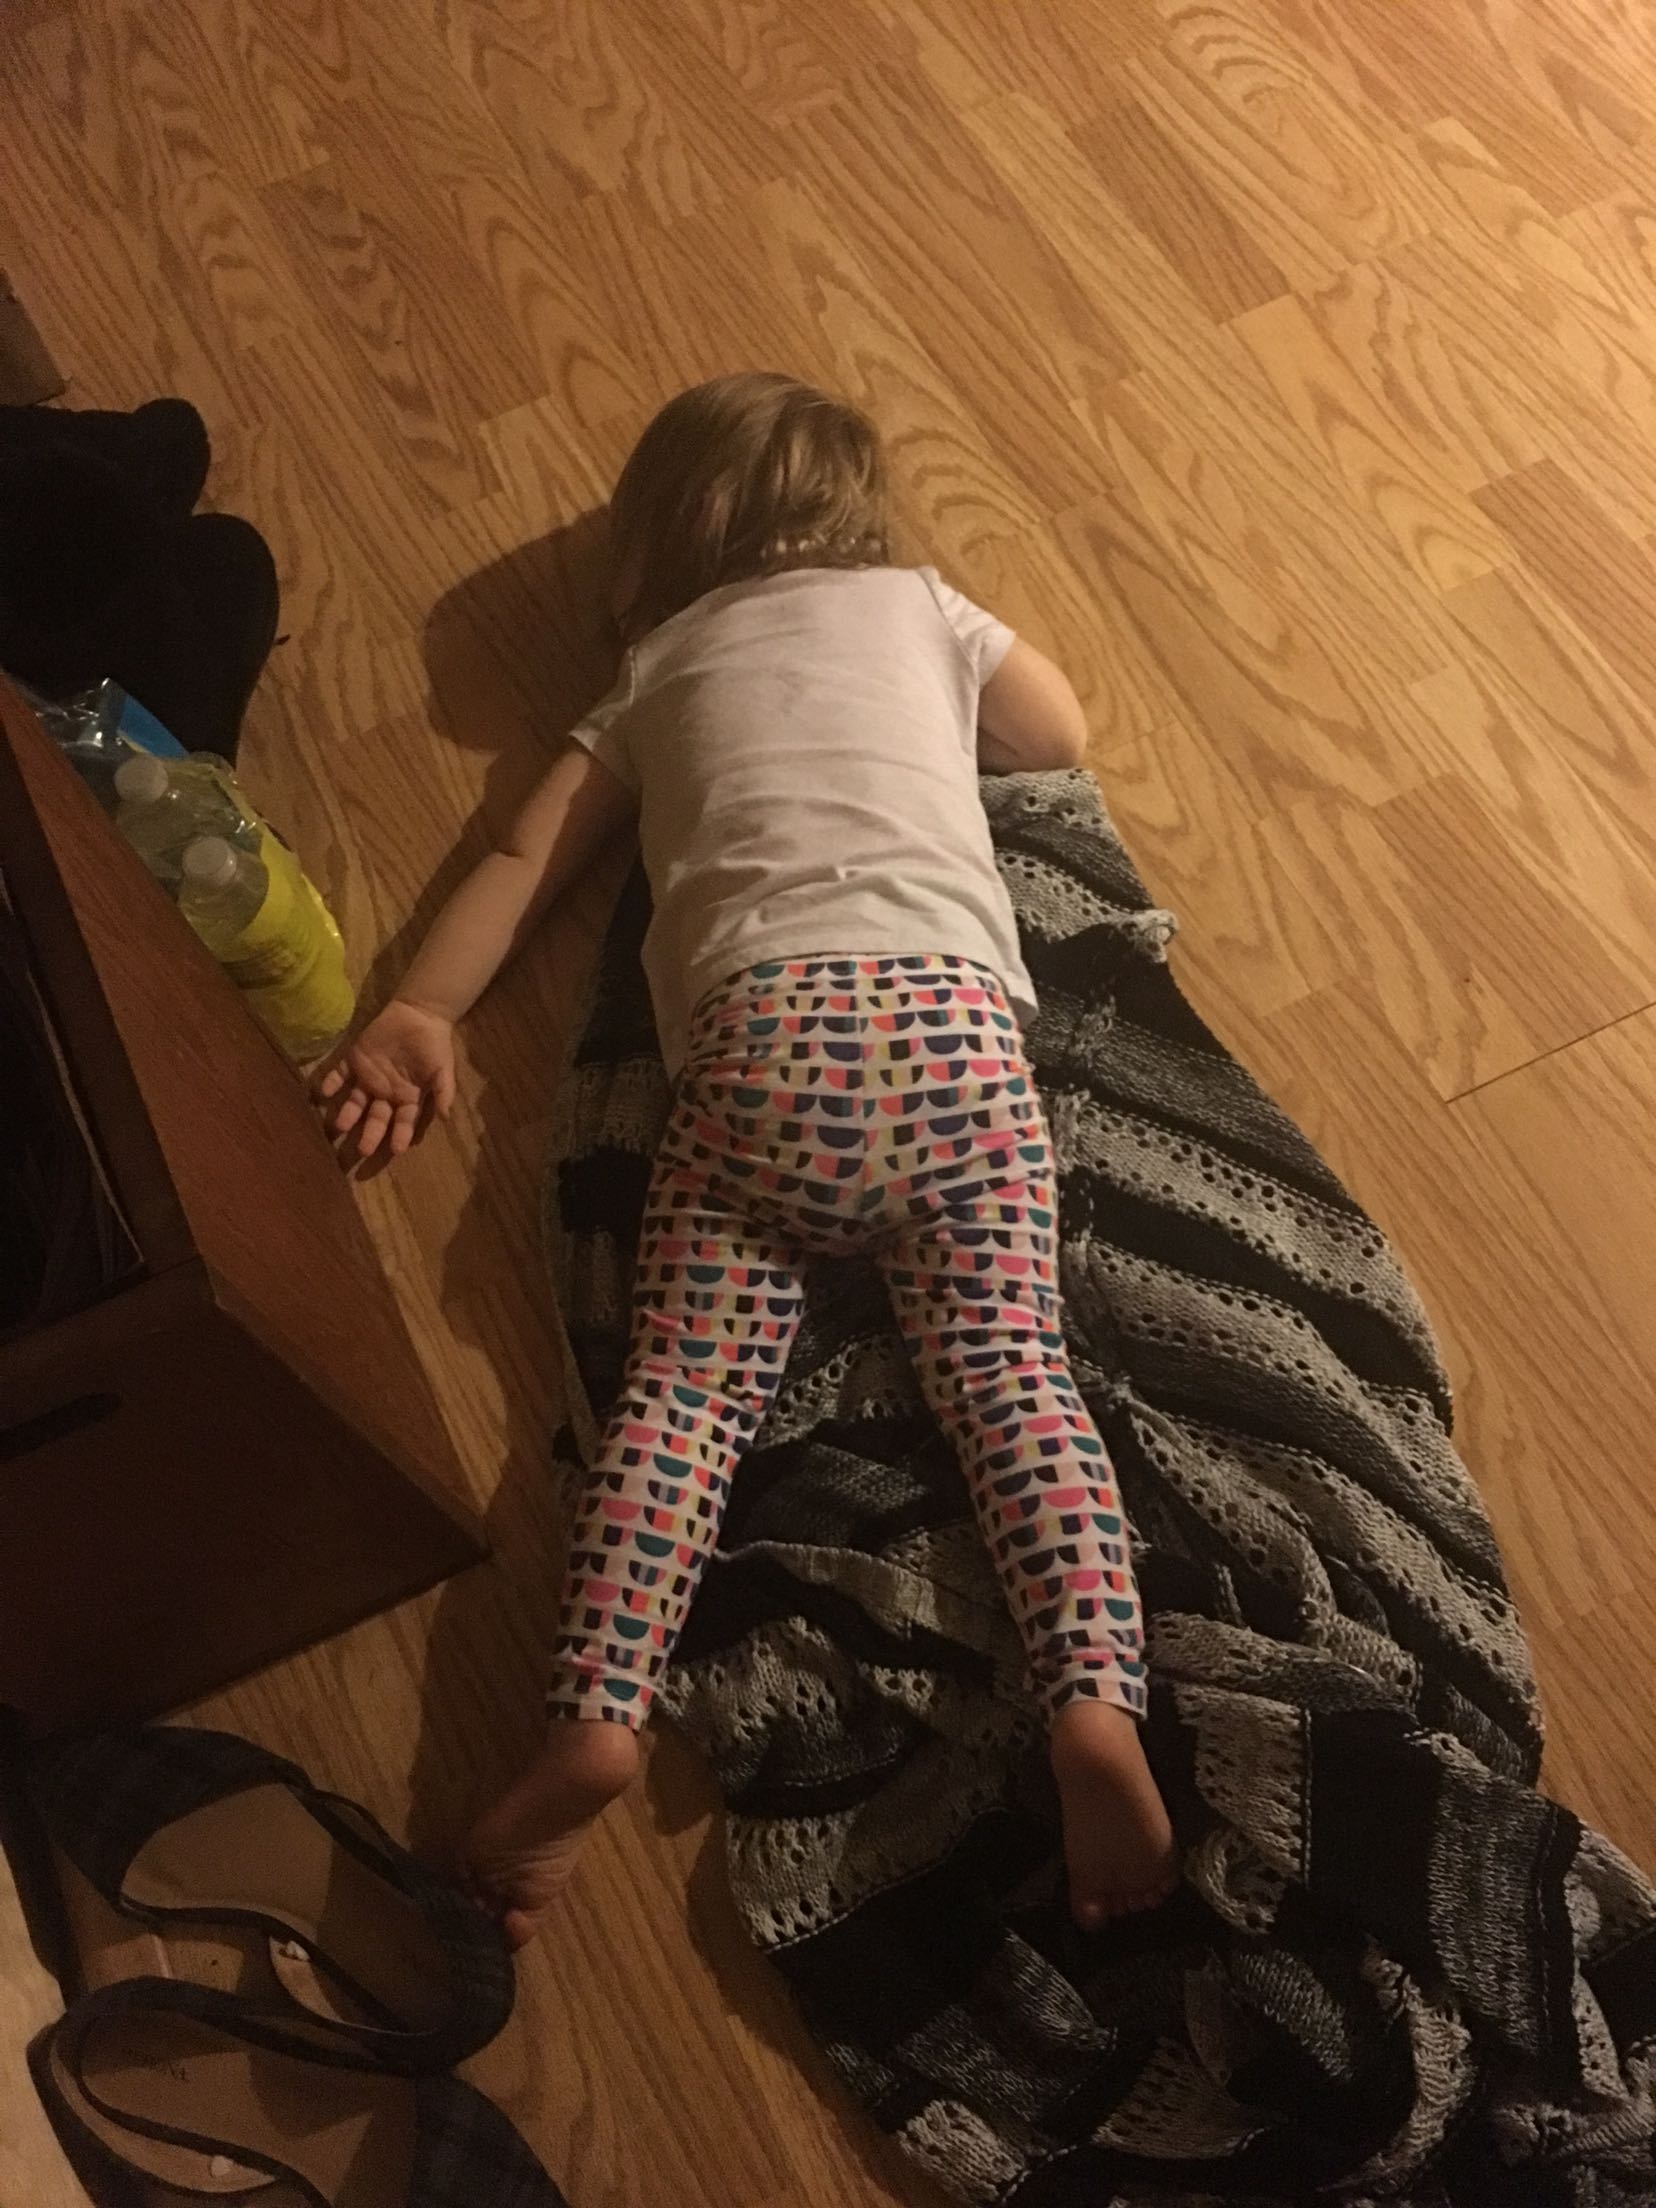 Toddlers are like drunk adults…